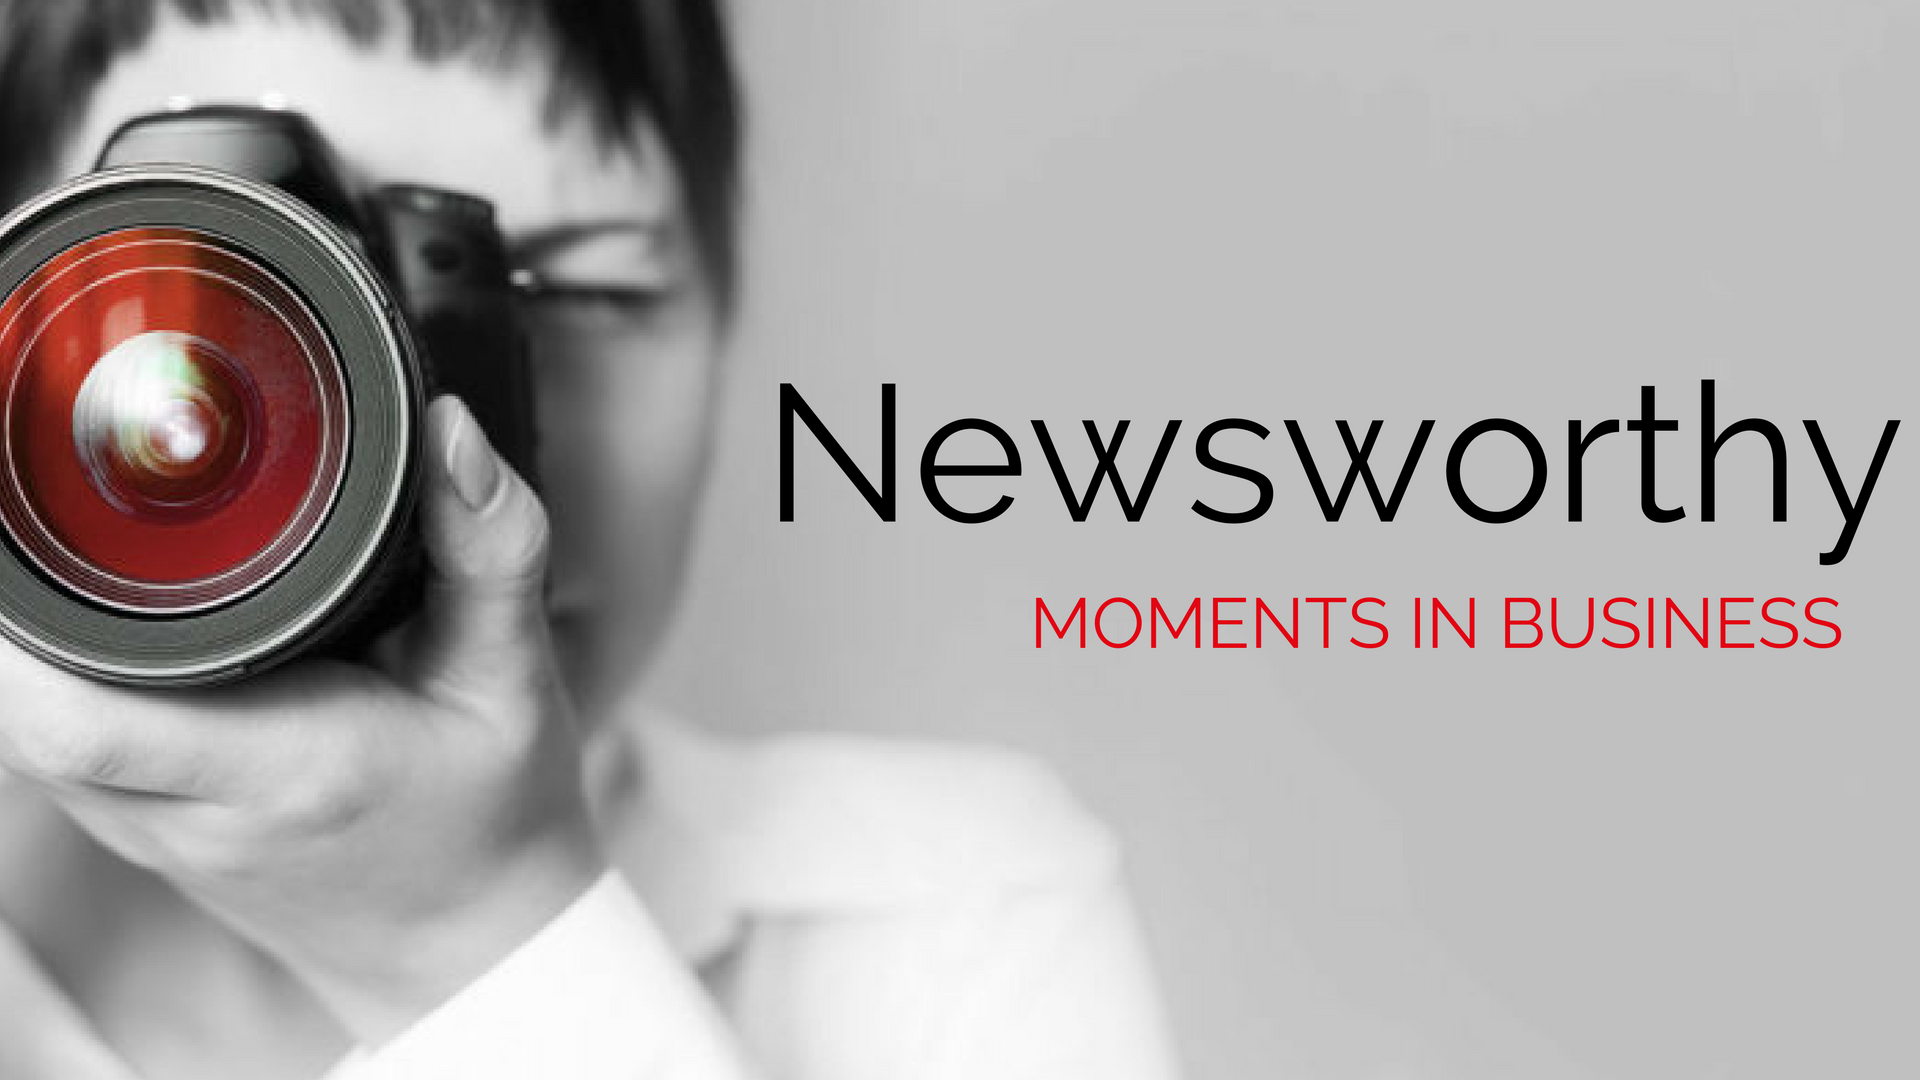 Newsworthy Moments in Business